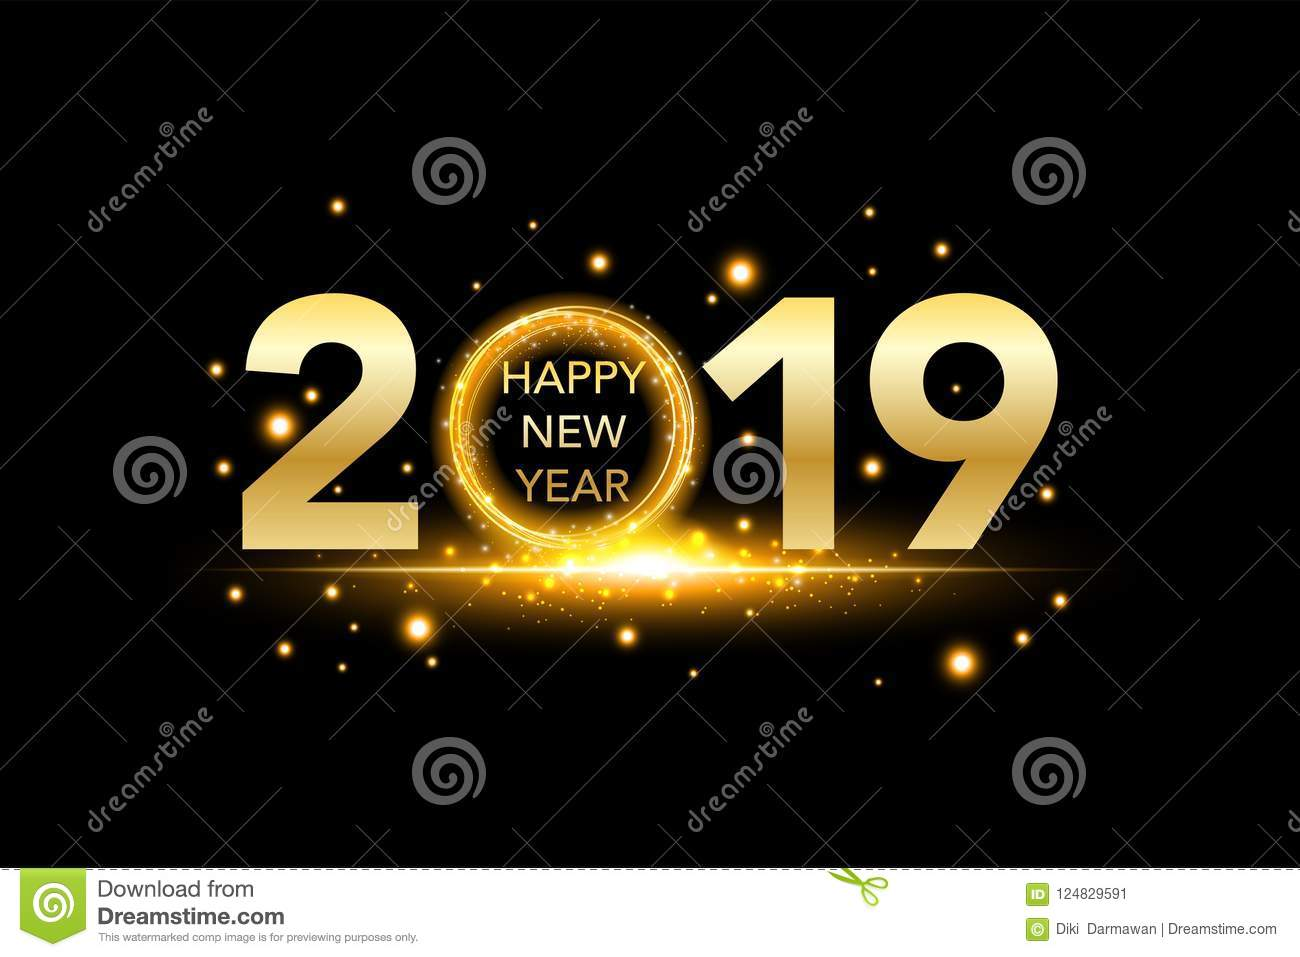 happy new year 2019 background with gold glitter confetti splatter festive premium design template for